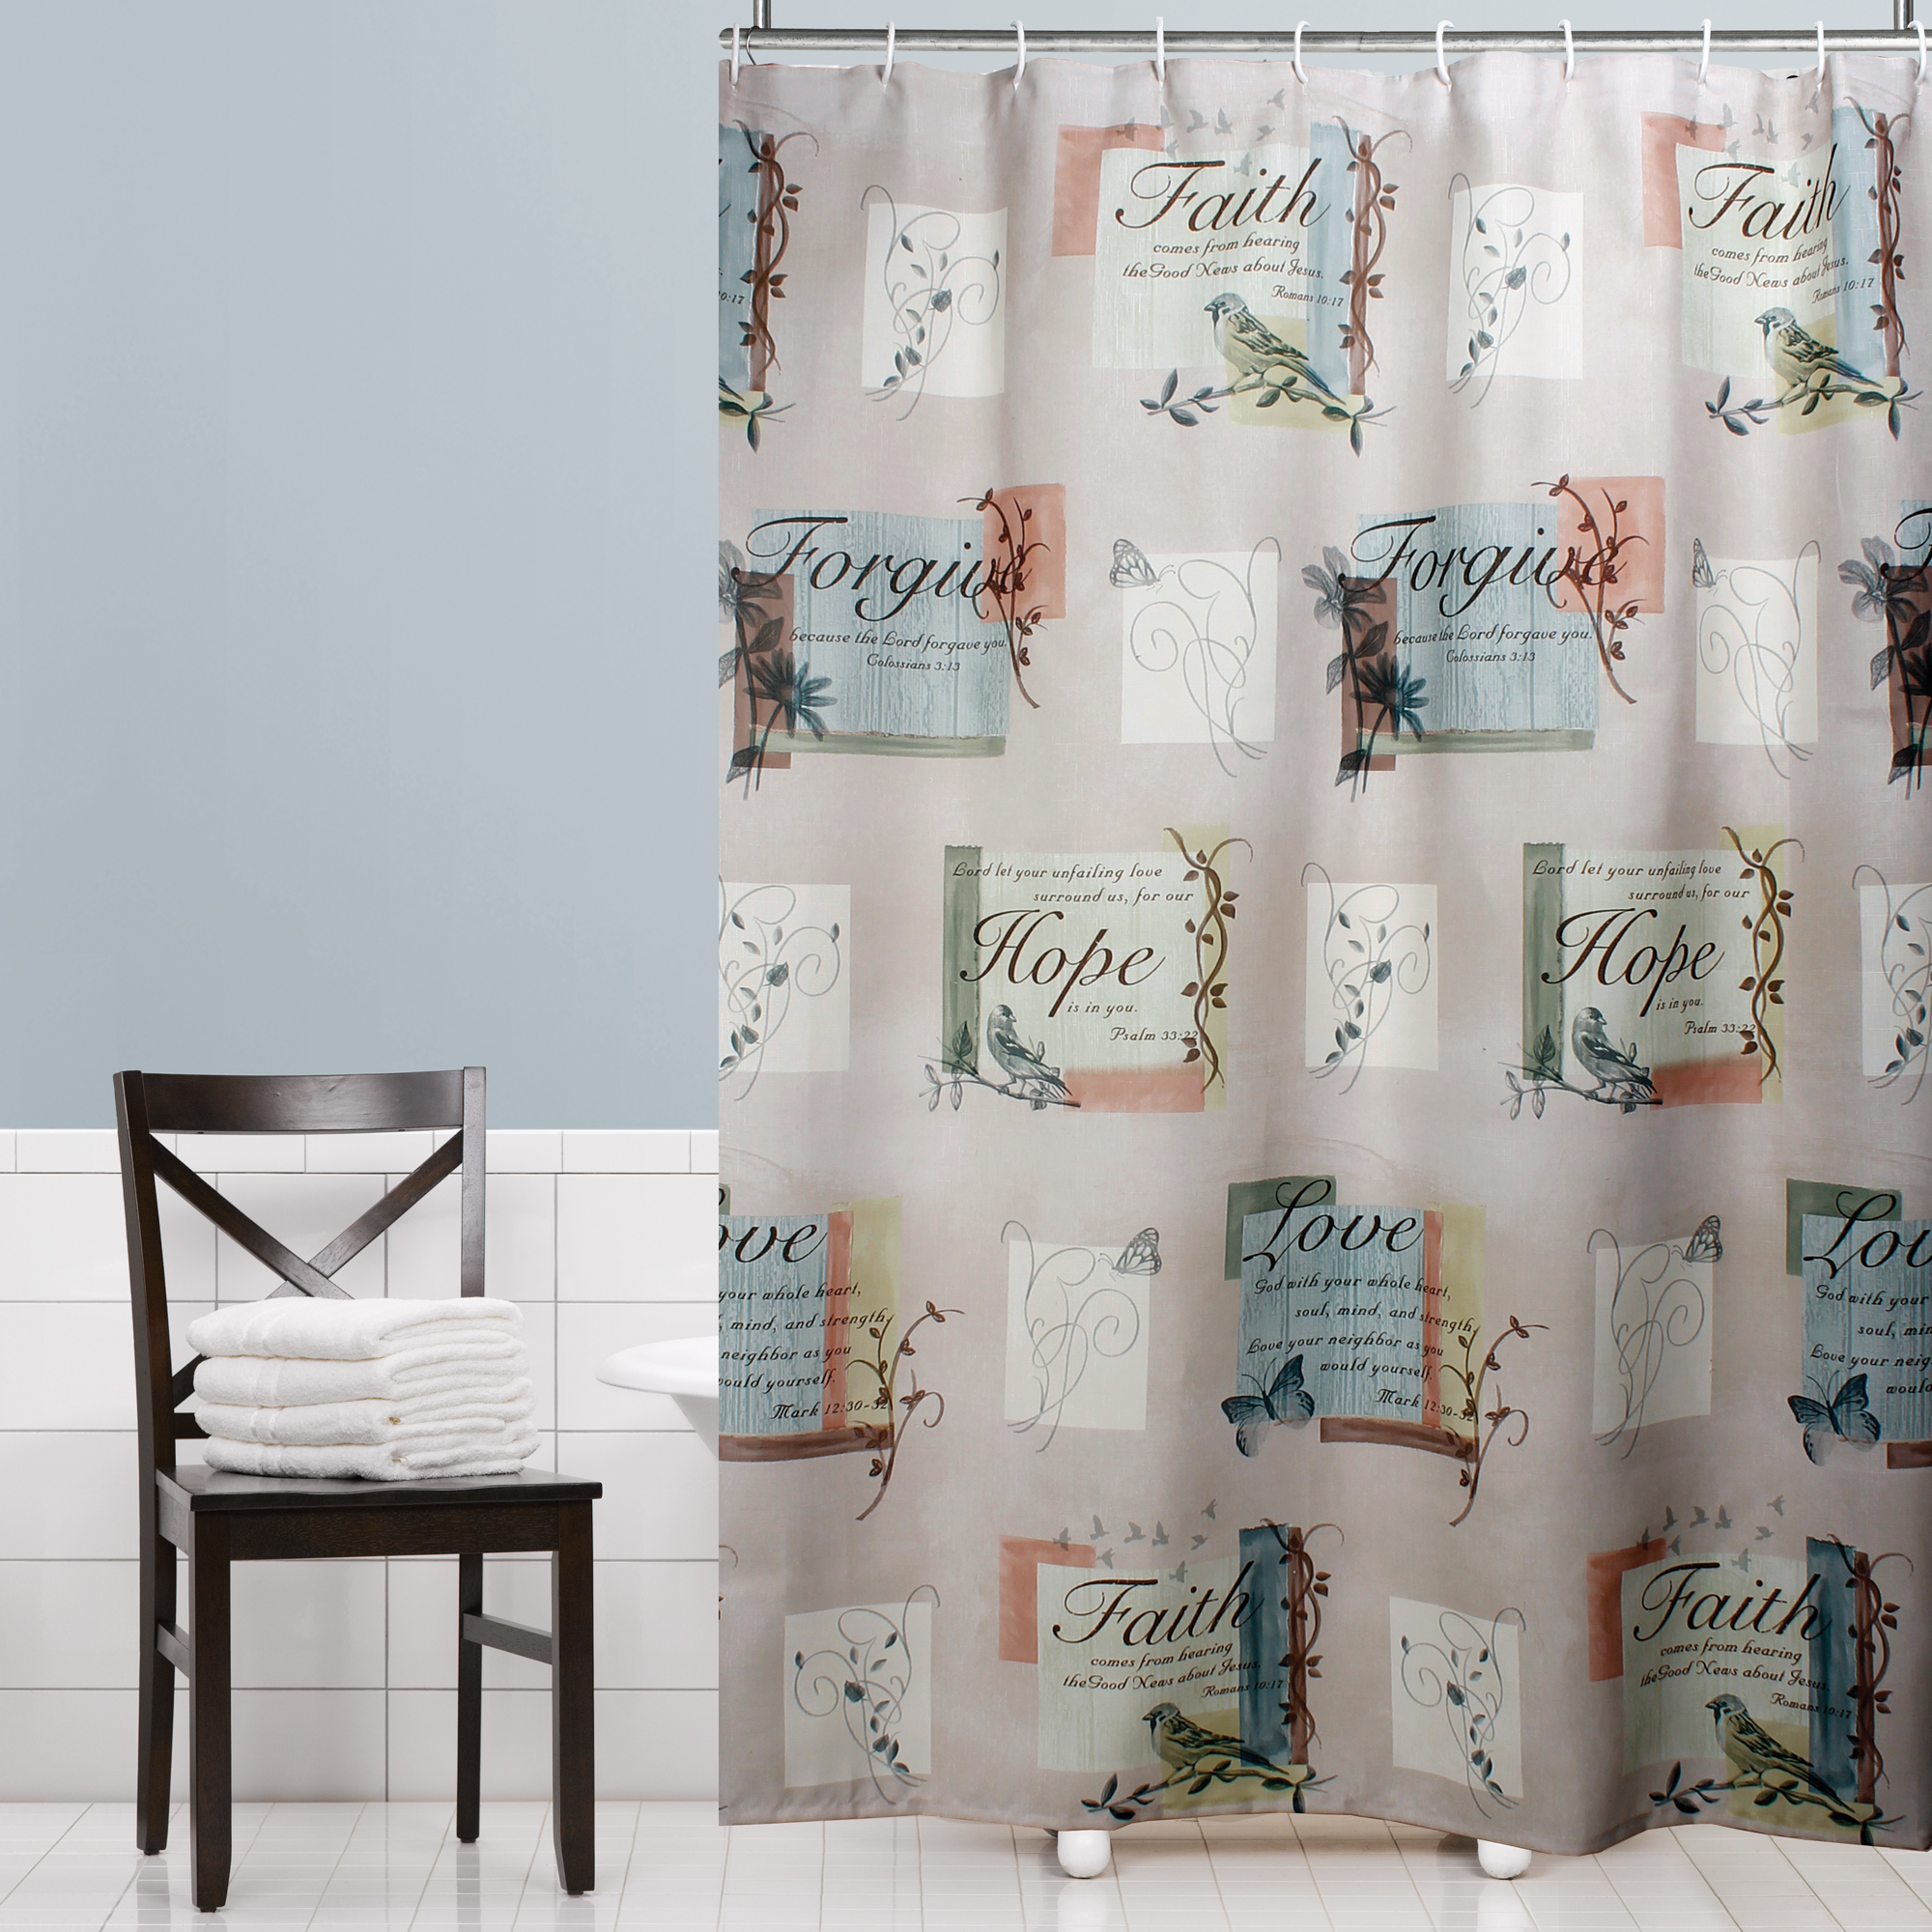 Curtains For Sale At Walmart Walmart Shower Curtains Fabric Hopeful